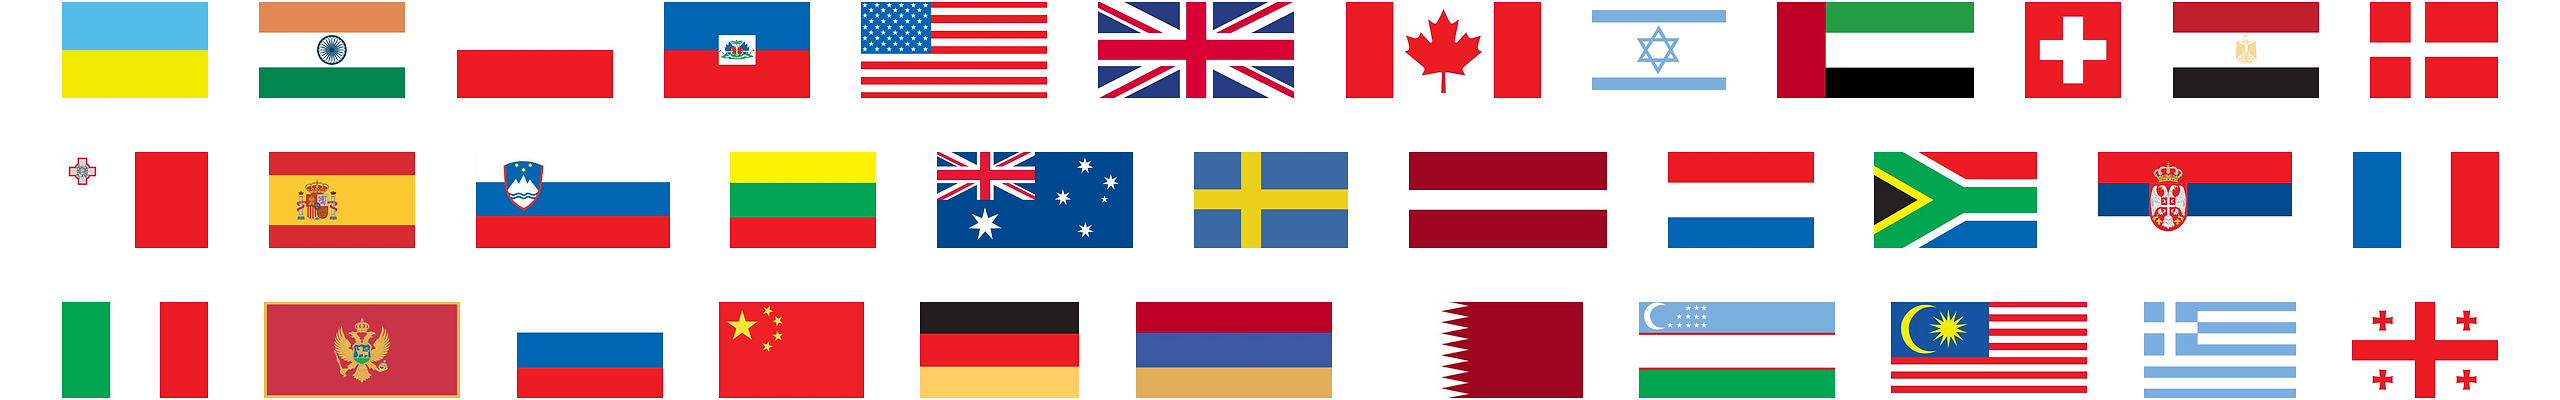 flags_1.png